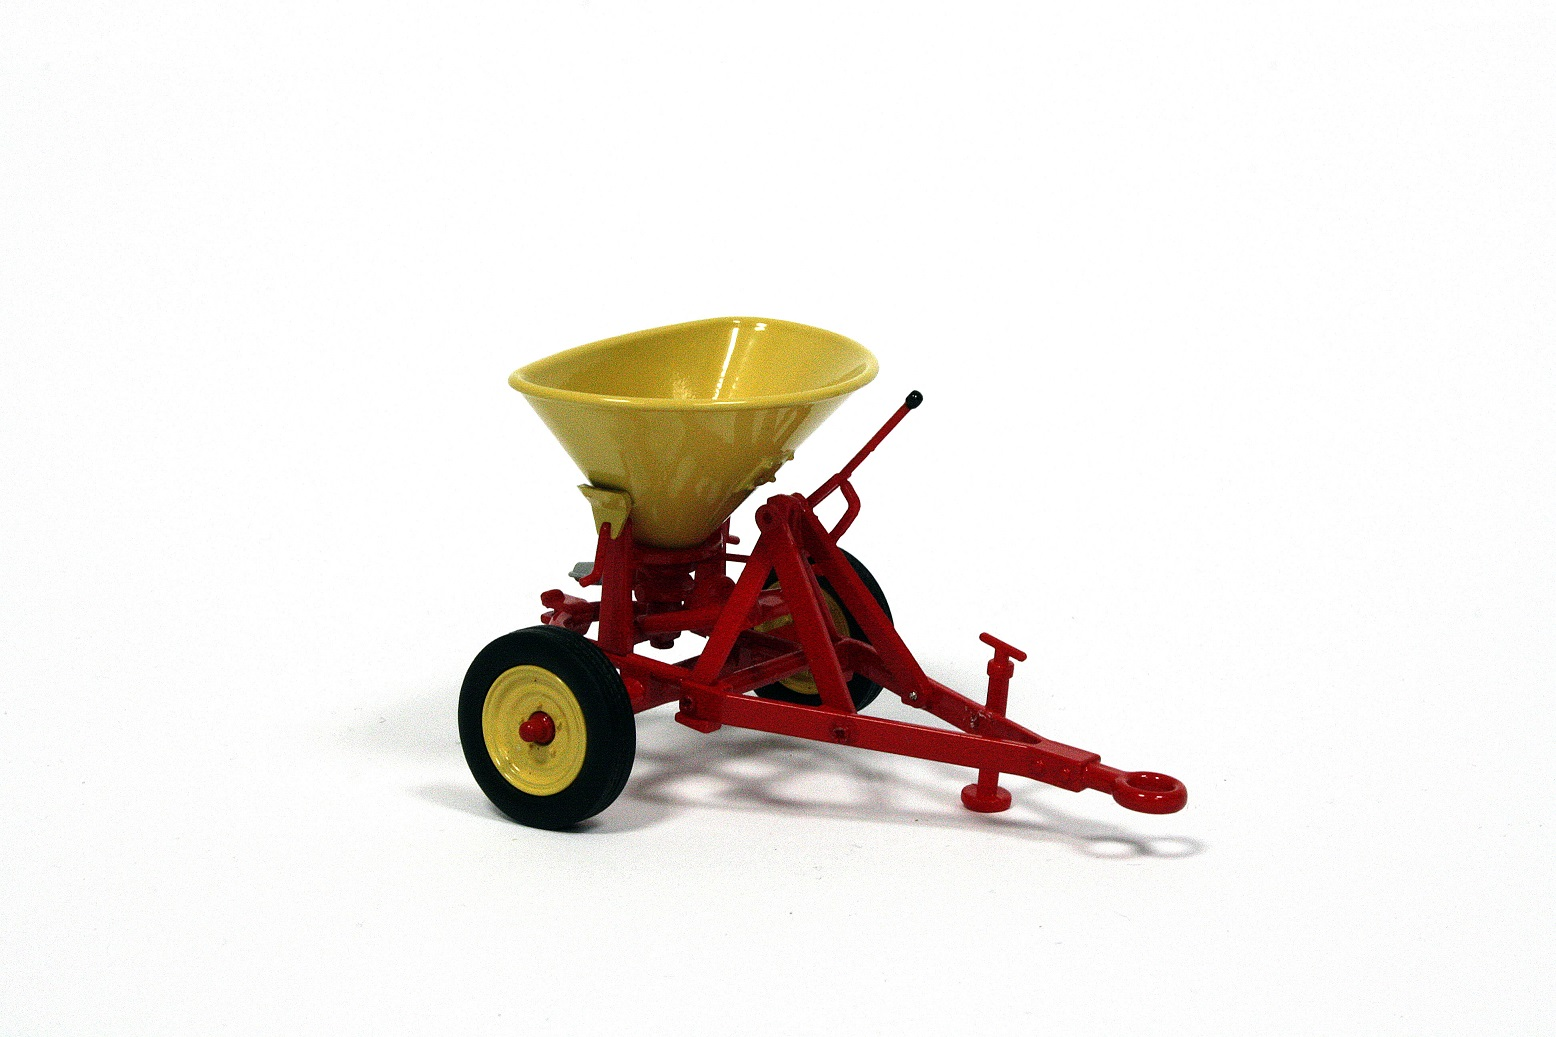 Vicon Pendulum Trailed spreader B75 - Limited Edition